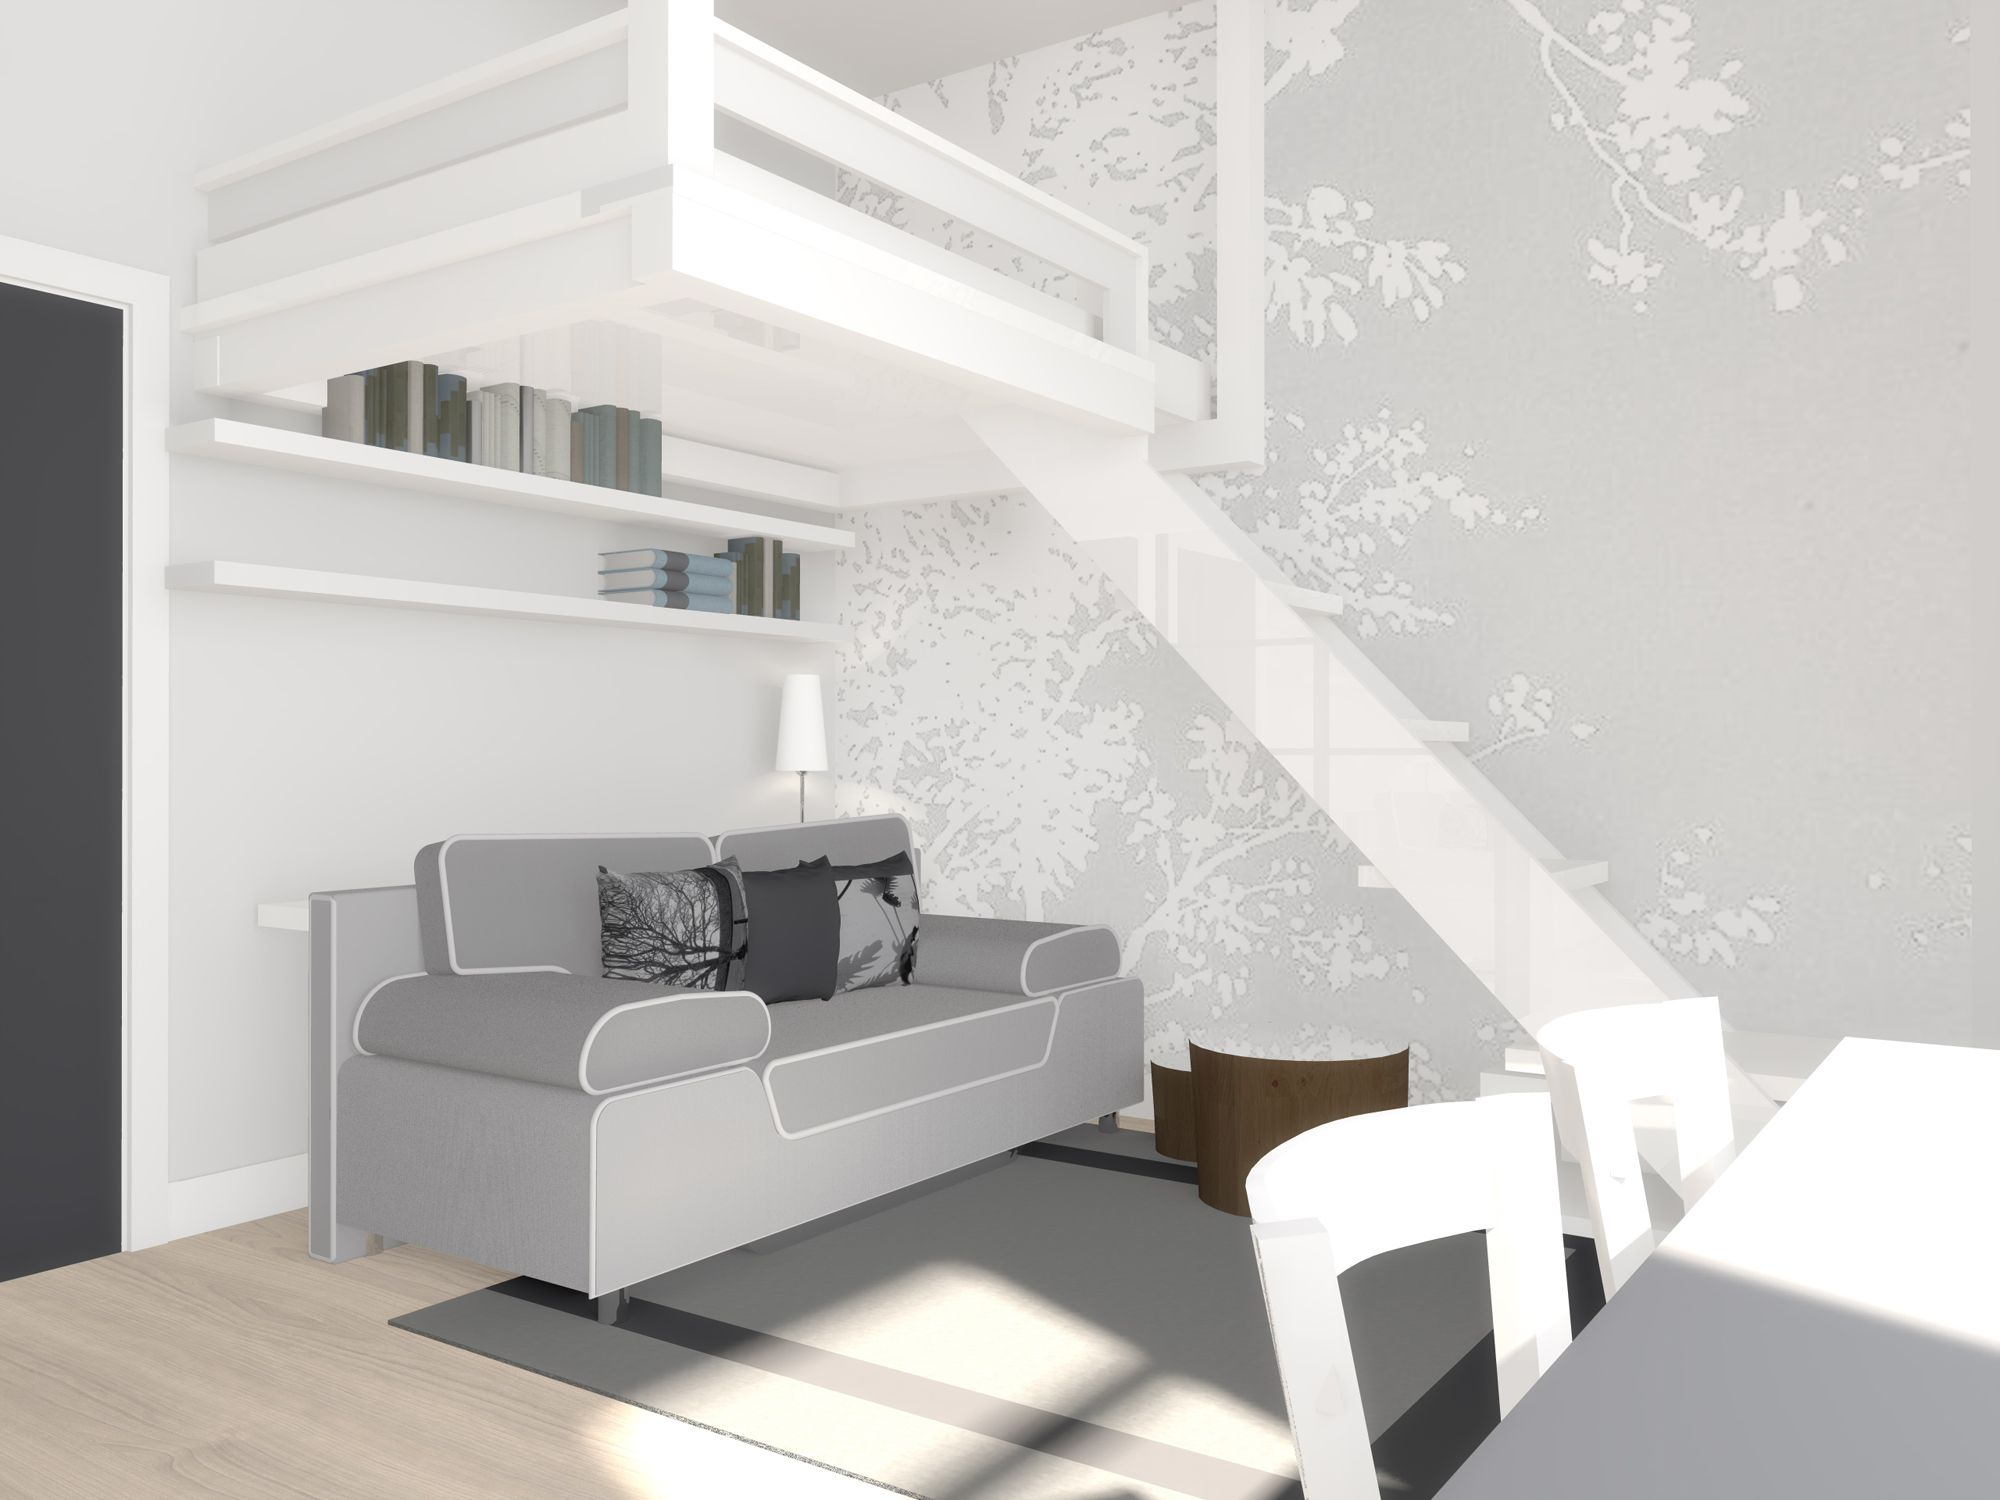 Interior design 22m2 apartment my p r o j e c t s for 35m2 apartment design